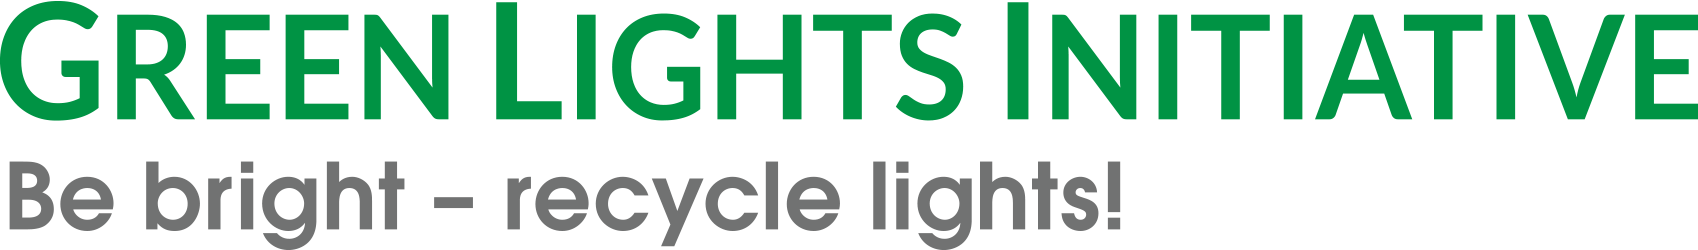 Green Lights Initiative - Be Bright Recycle Lights